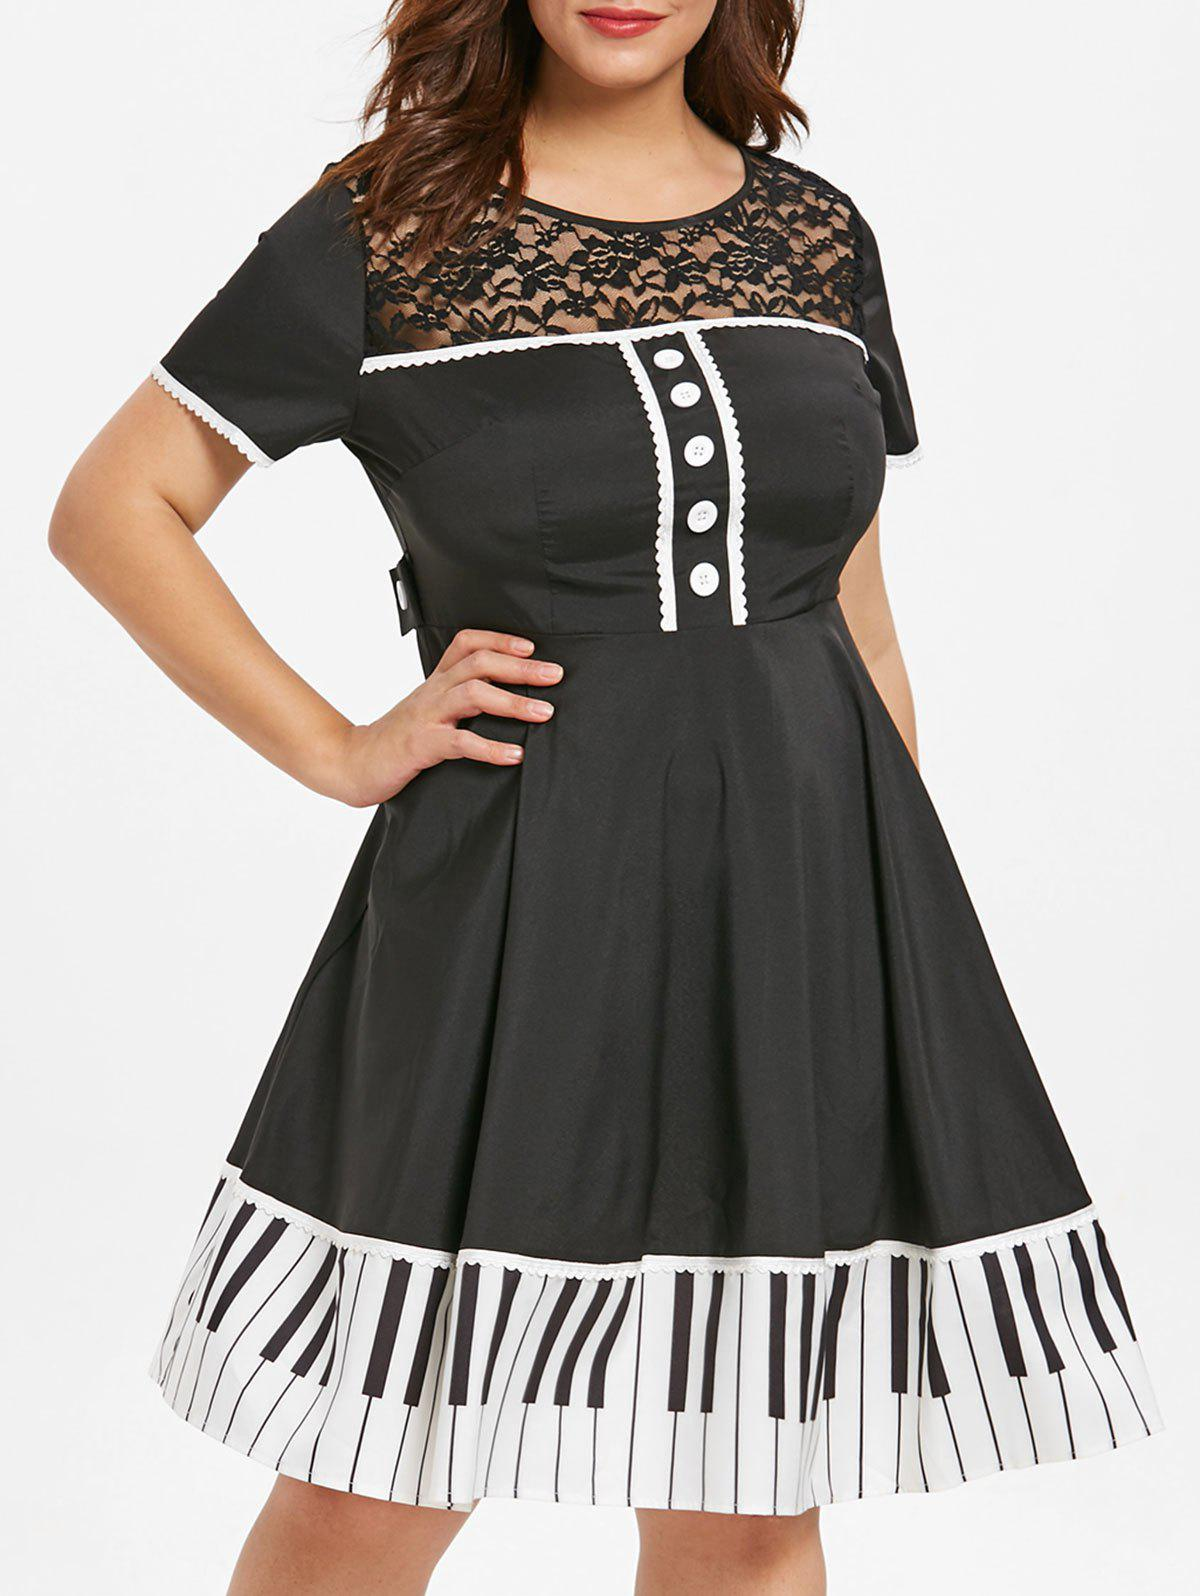 Plus Size Contrast Vintage Dress with Lace Panel Rosegal